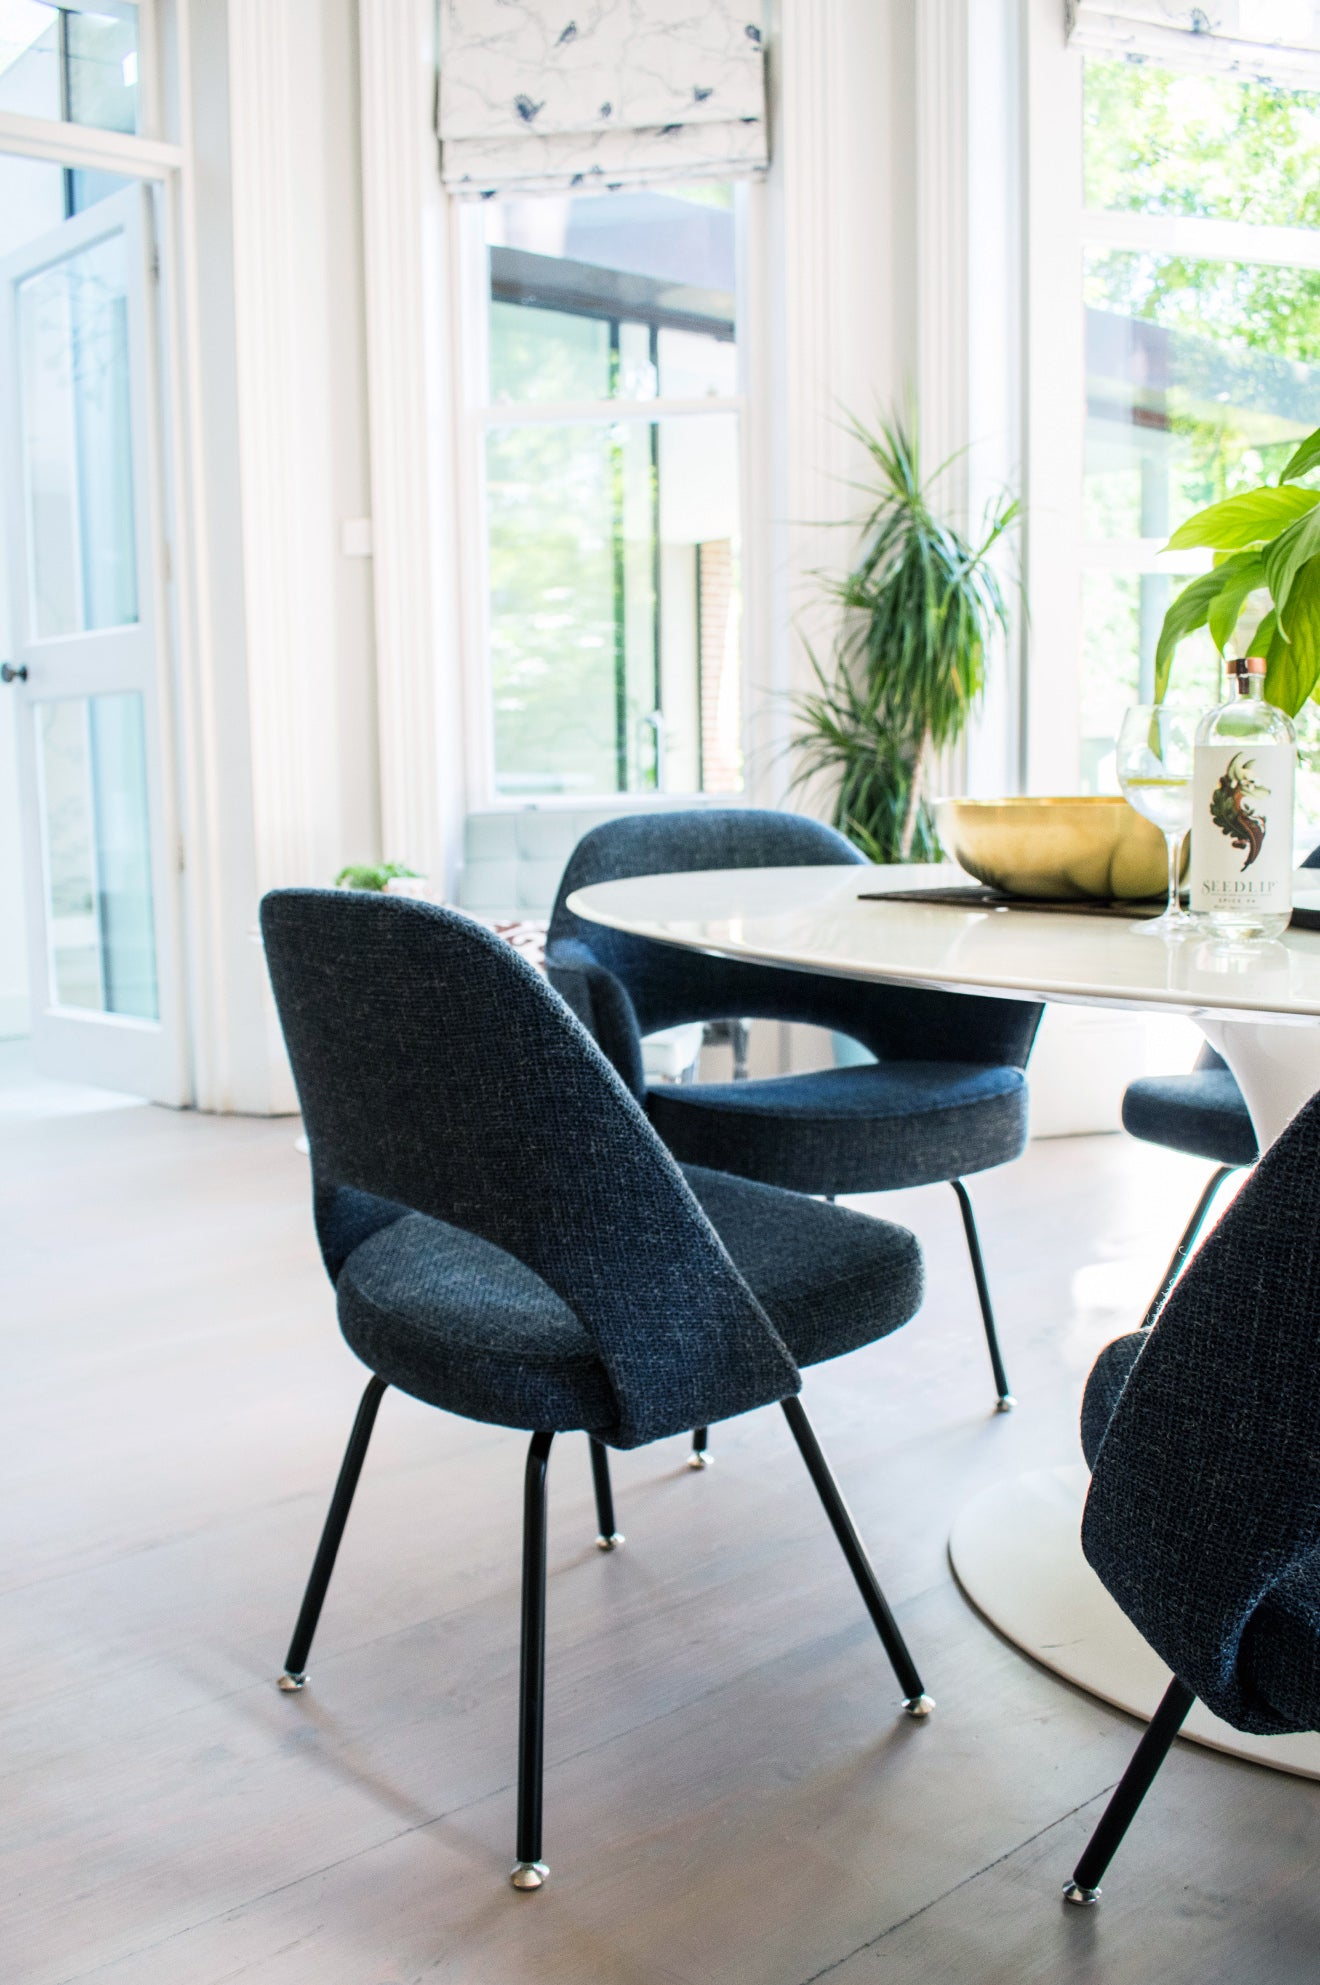 NW3 Interiors Showroom Knoll furniture